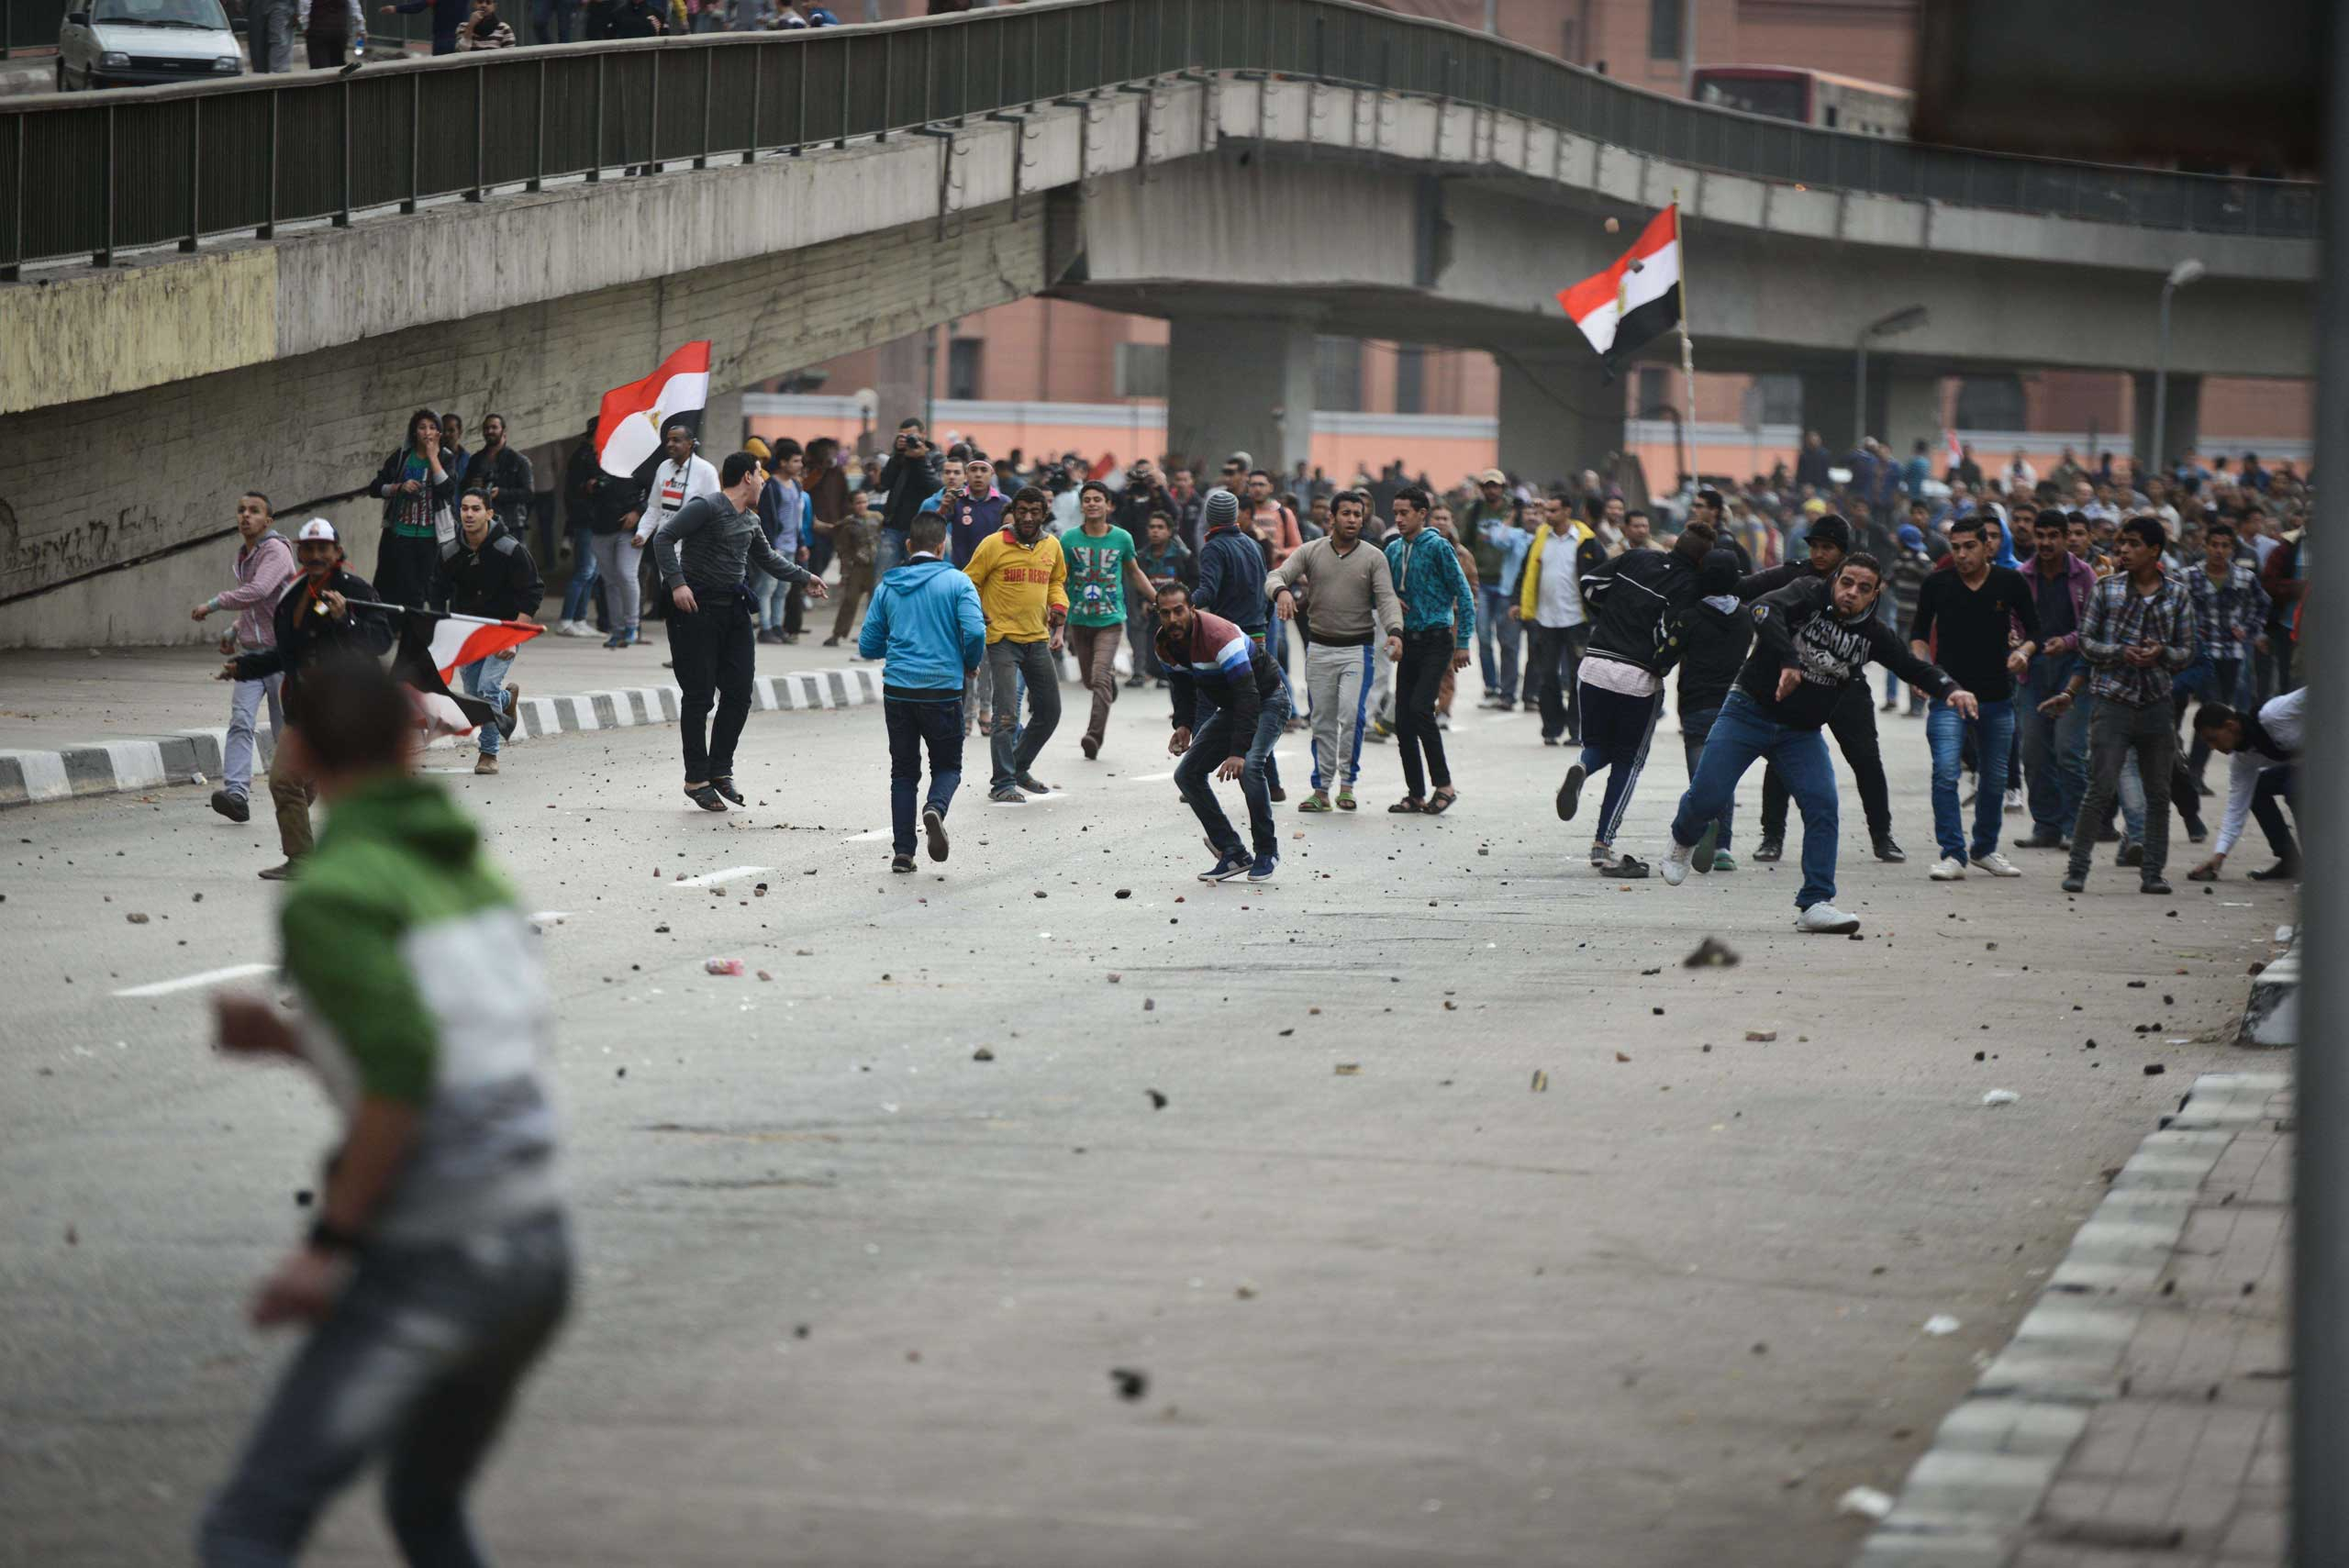 Supporters of President Abdul Fattah al-Sisi clash with anti-government protesters following demonstrations in Cairo on Jan. 25, 2015.